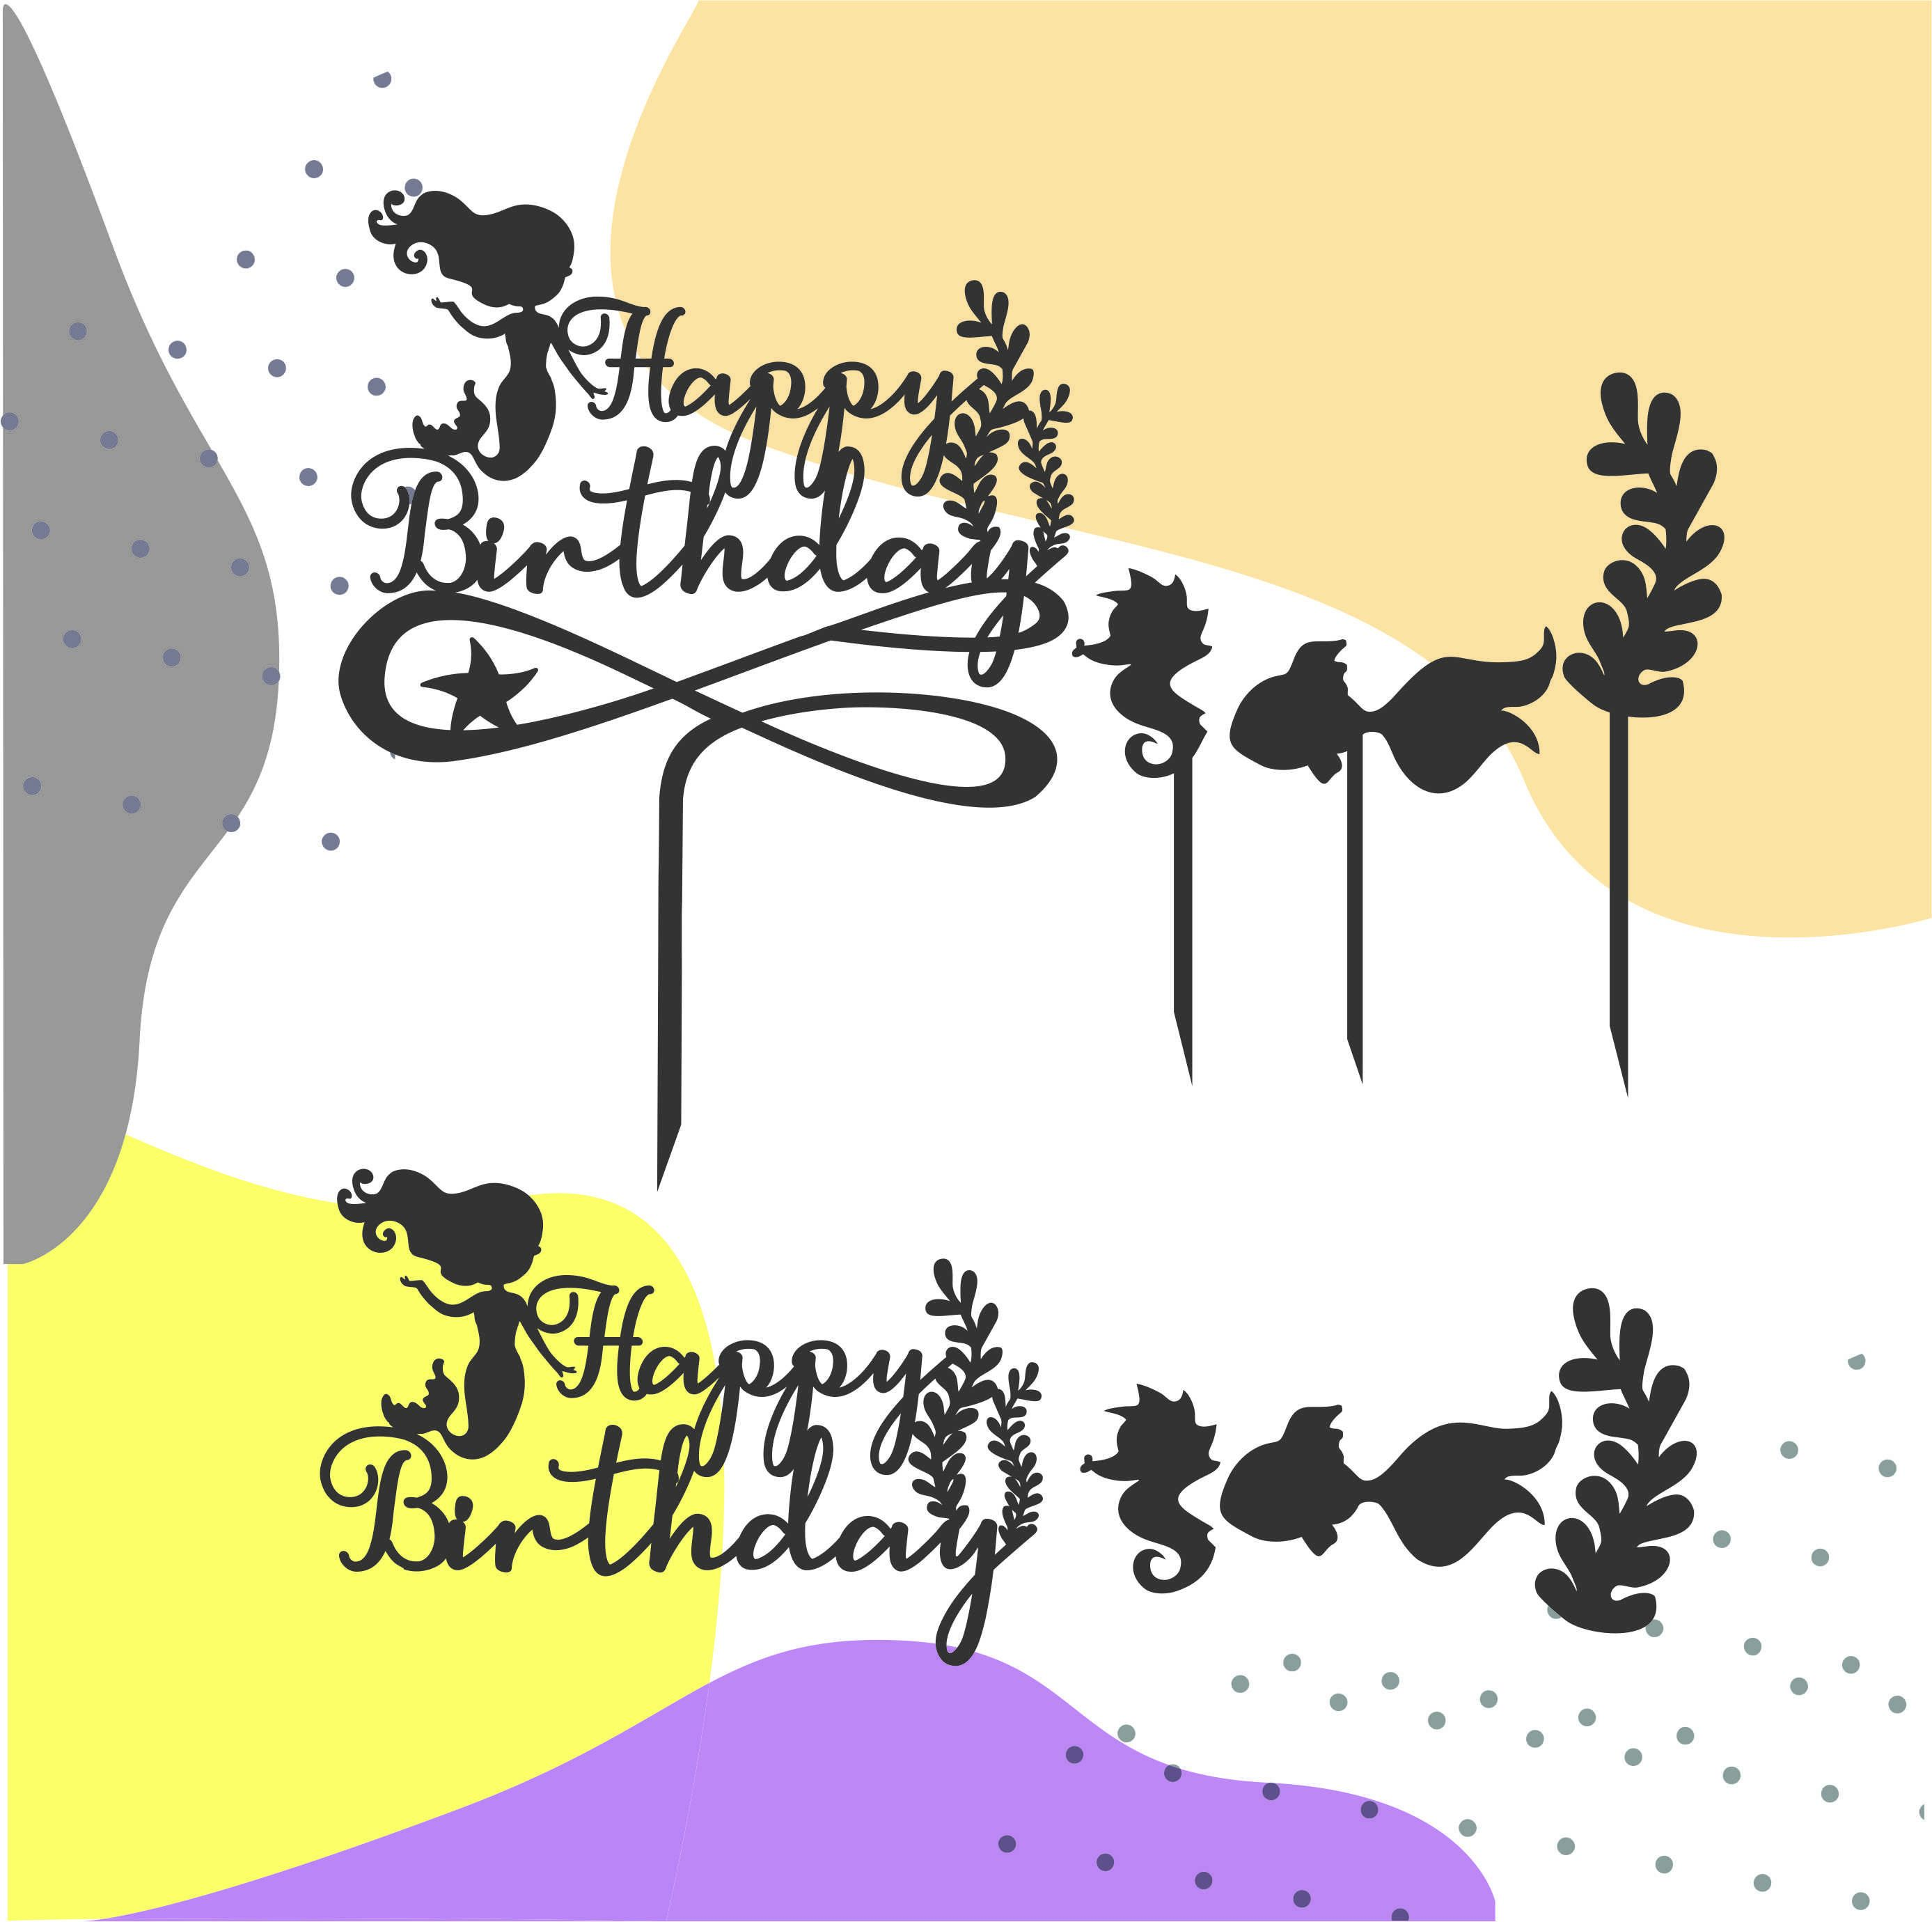 cake birthday party topper cut file cake topper birthday baby shower birthday decor cake decorations cake topper svg hb vector